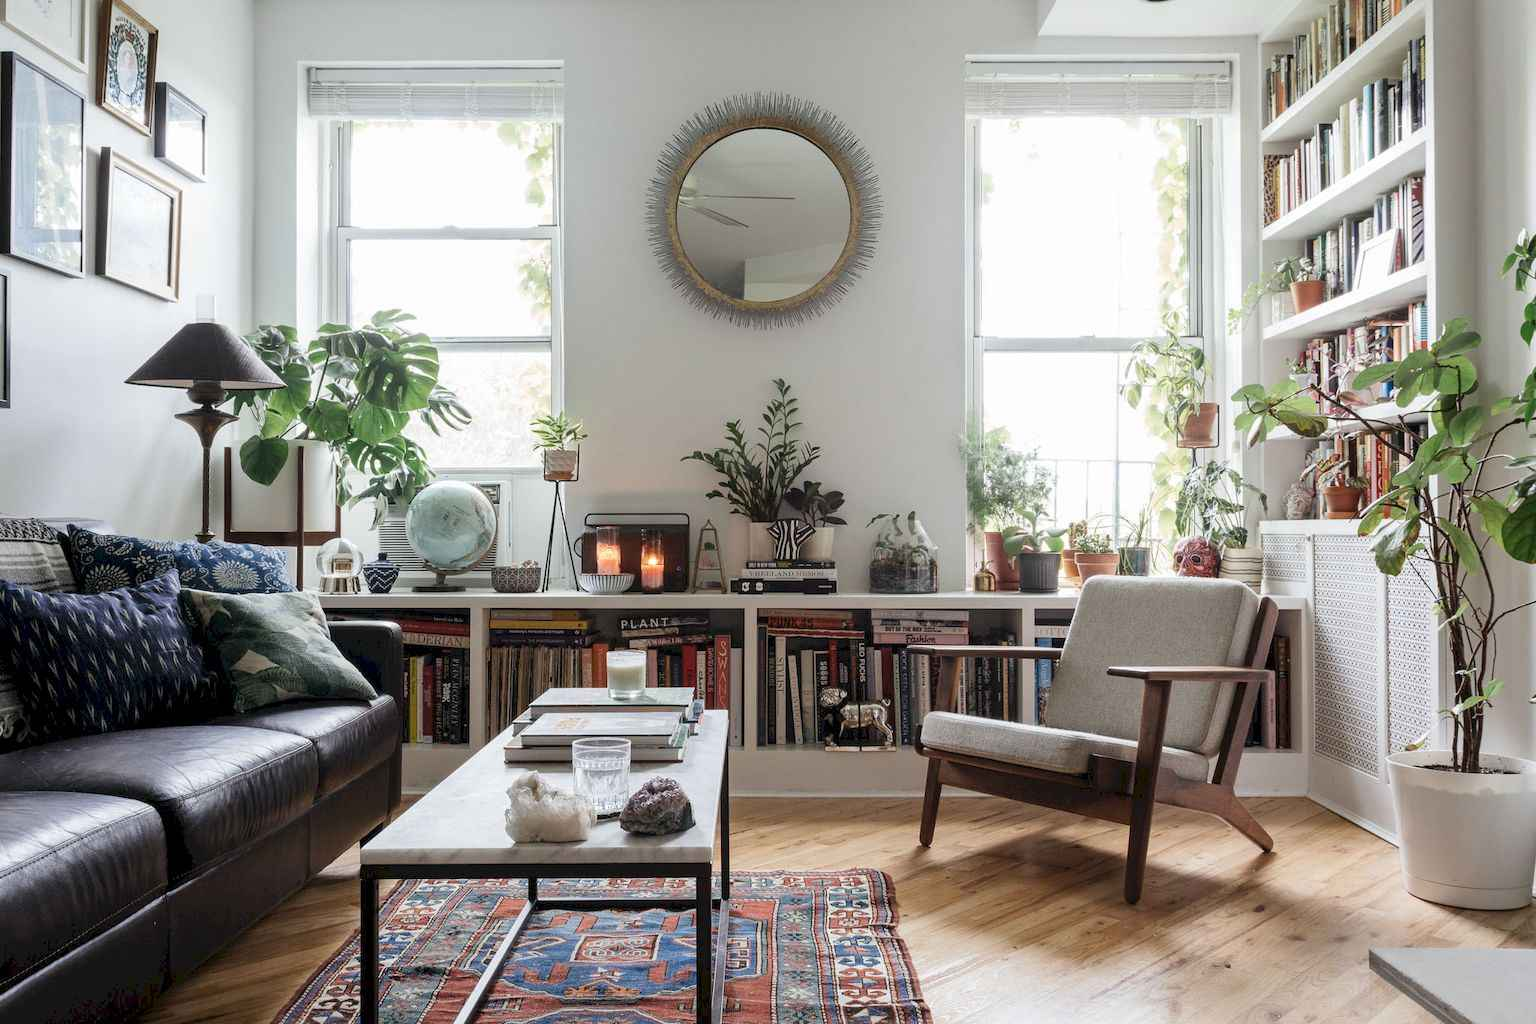 Couples first apartment decorating ideas (39)